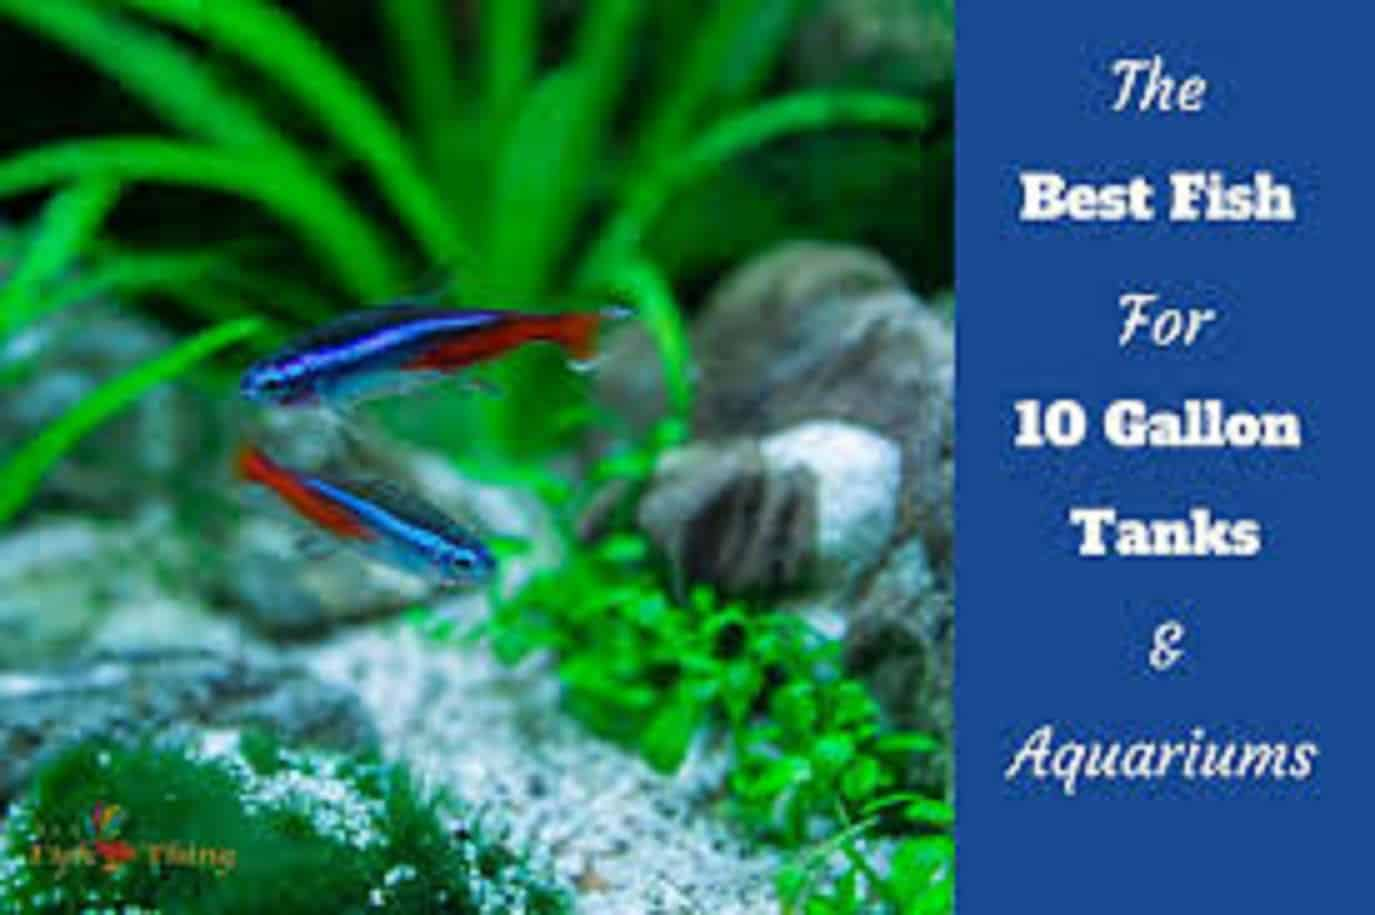 Best Fish And Invertebrates For A 10 Gallon Fish Tank